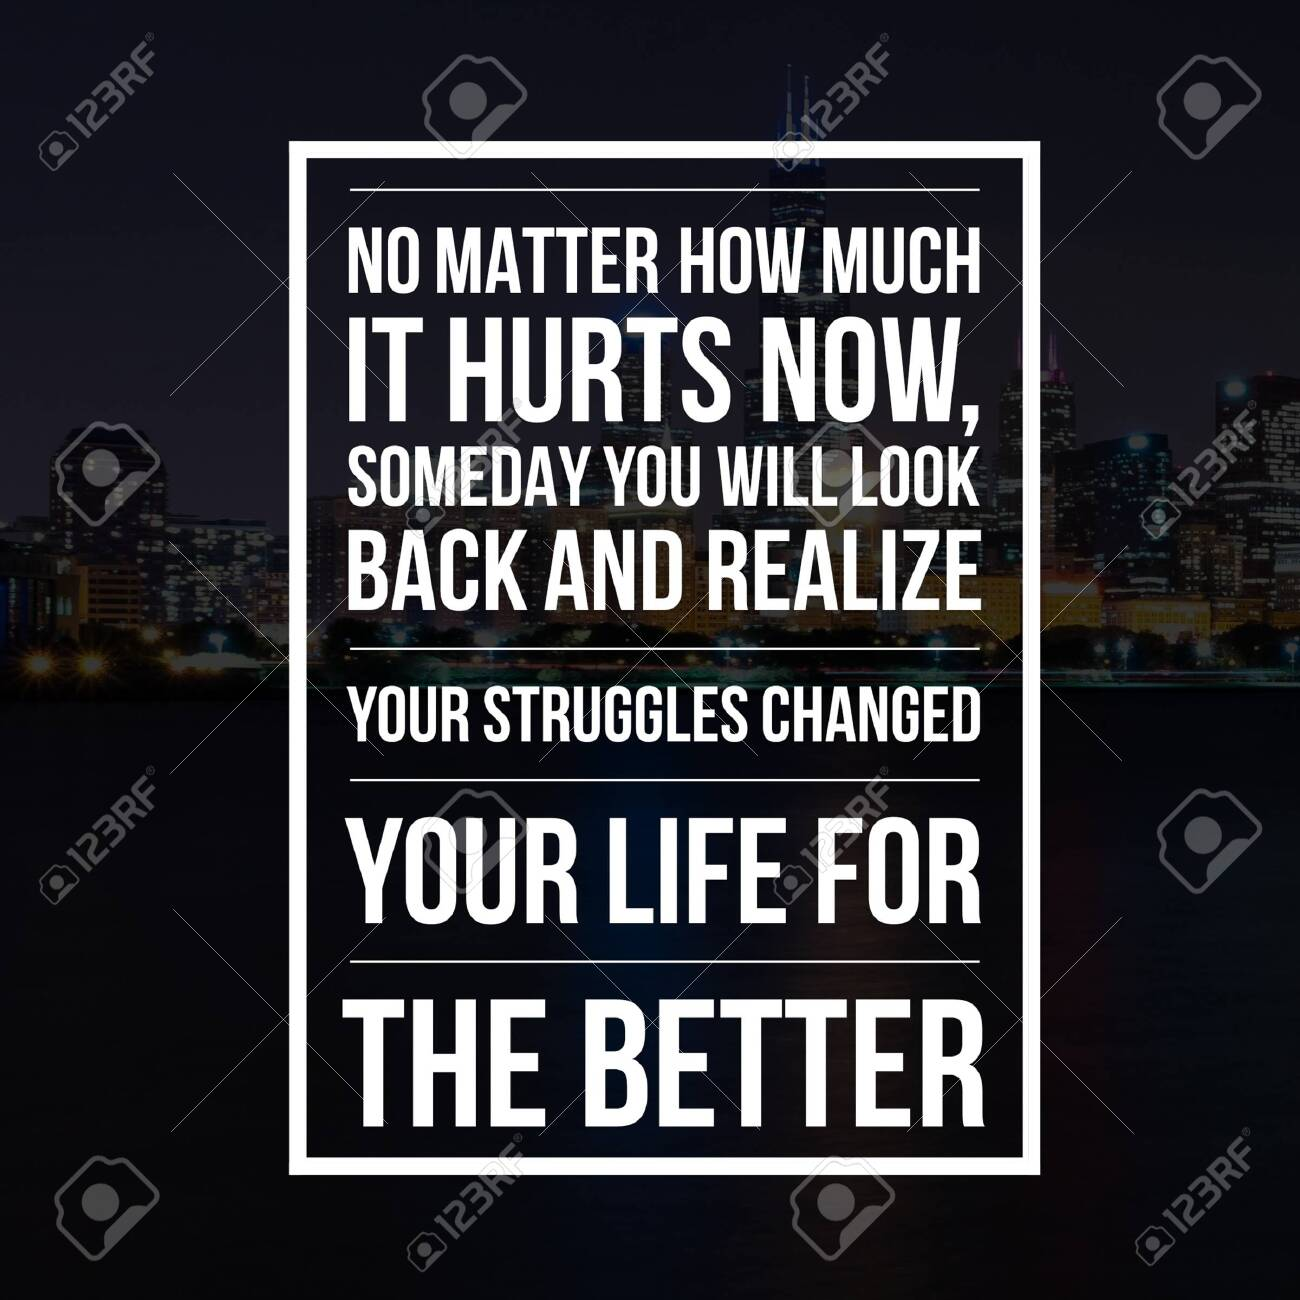 Motivational Quotes And Inspirational Quotes For Life, Success ...